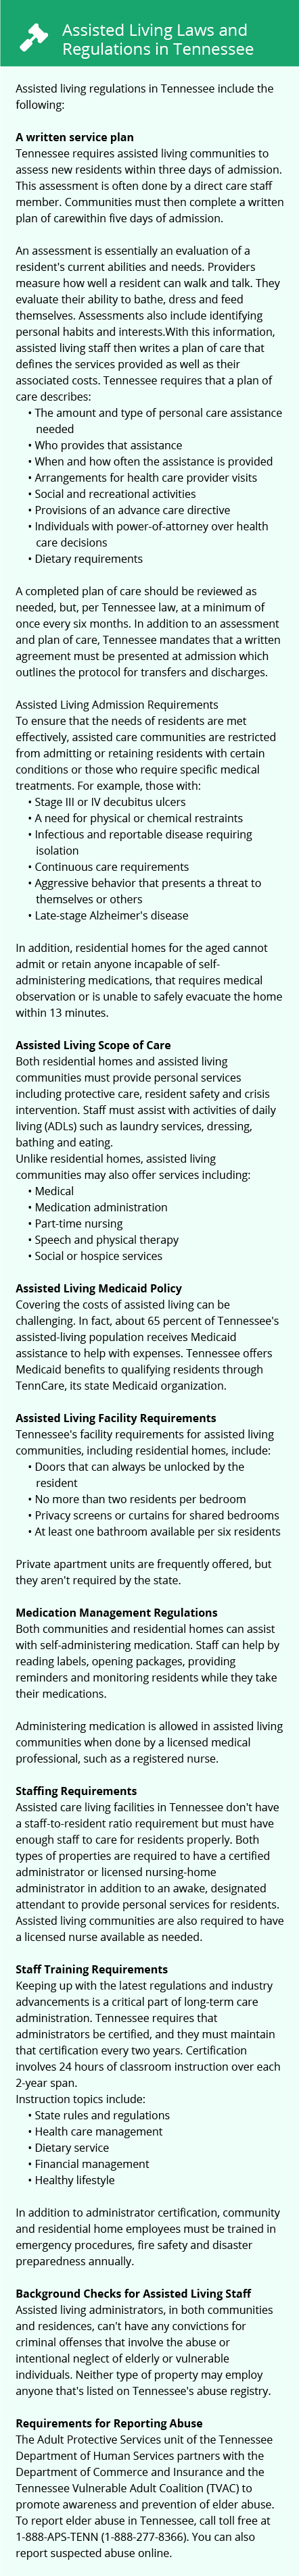 Laws and Regulations in Tennessee